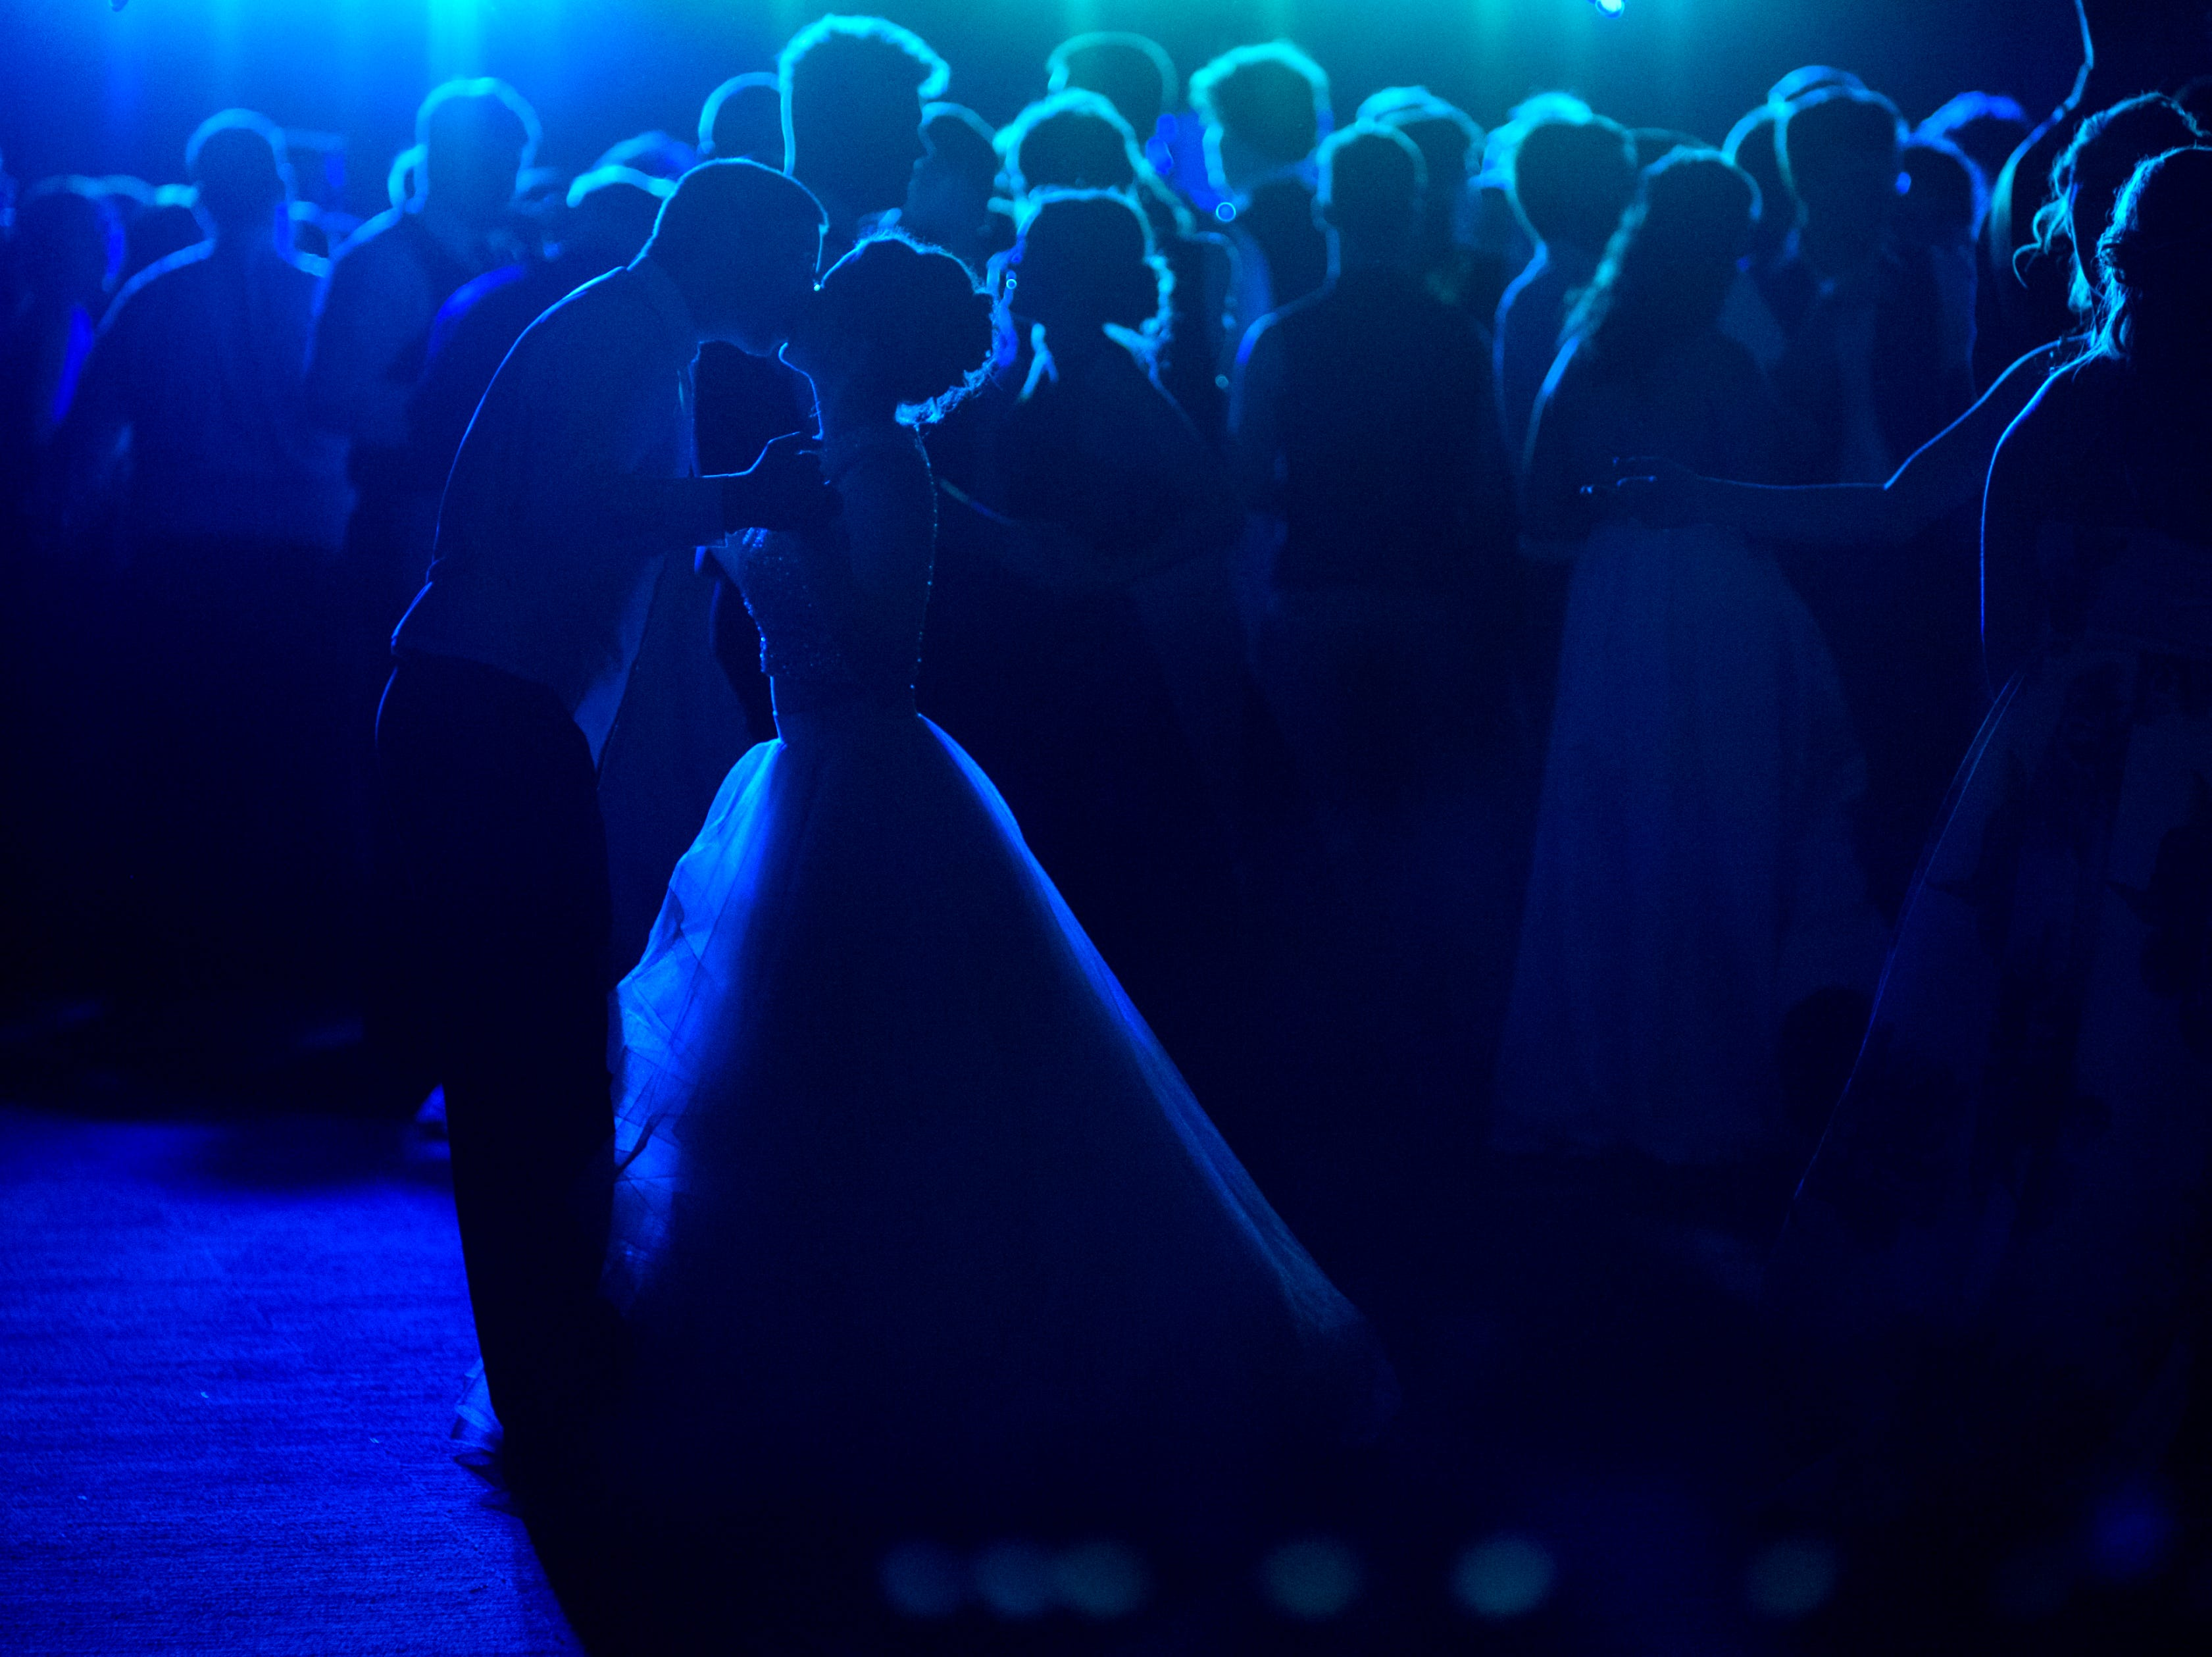 Johnathon Chaffin, left, leans in for a kiss from his prom date Alexis Macon, right, as they dance along with other Mt. Vernon High School students at University of Southern Indiana's Carter Hall in Evansville, Ind., Saturday, May 4, 2019.